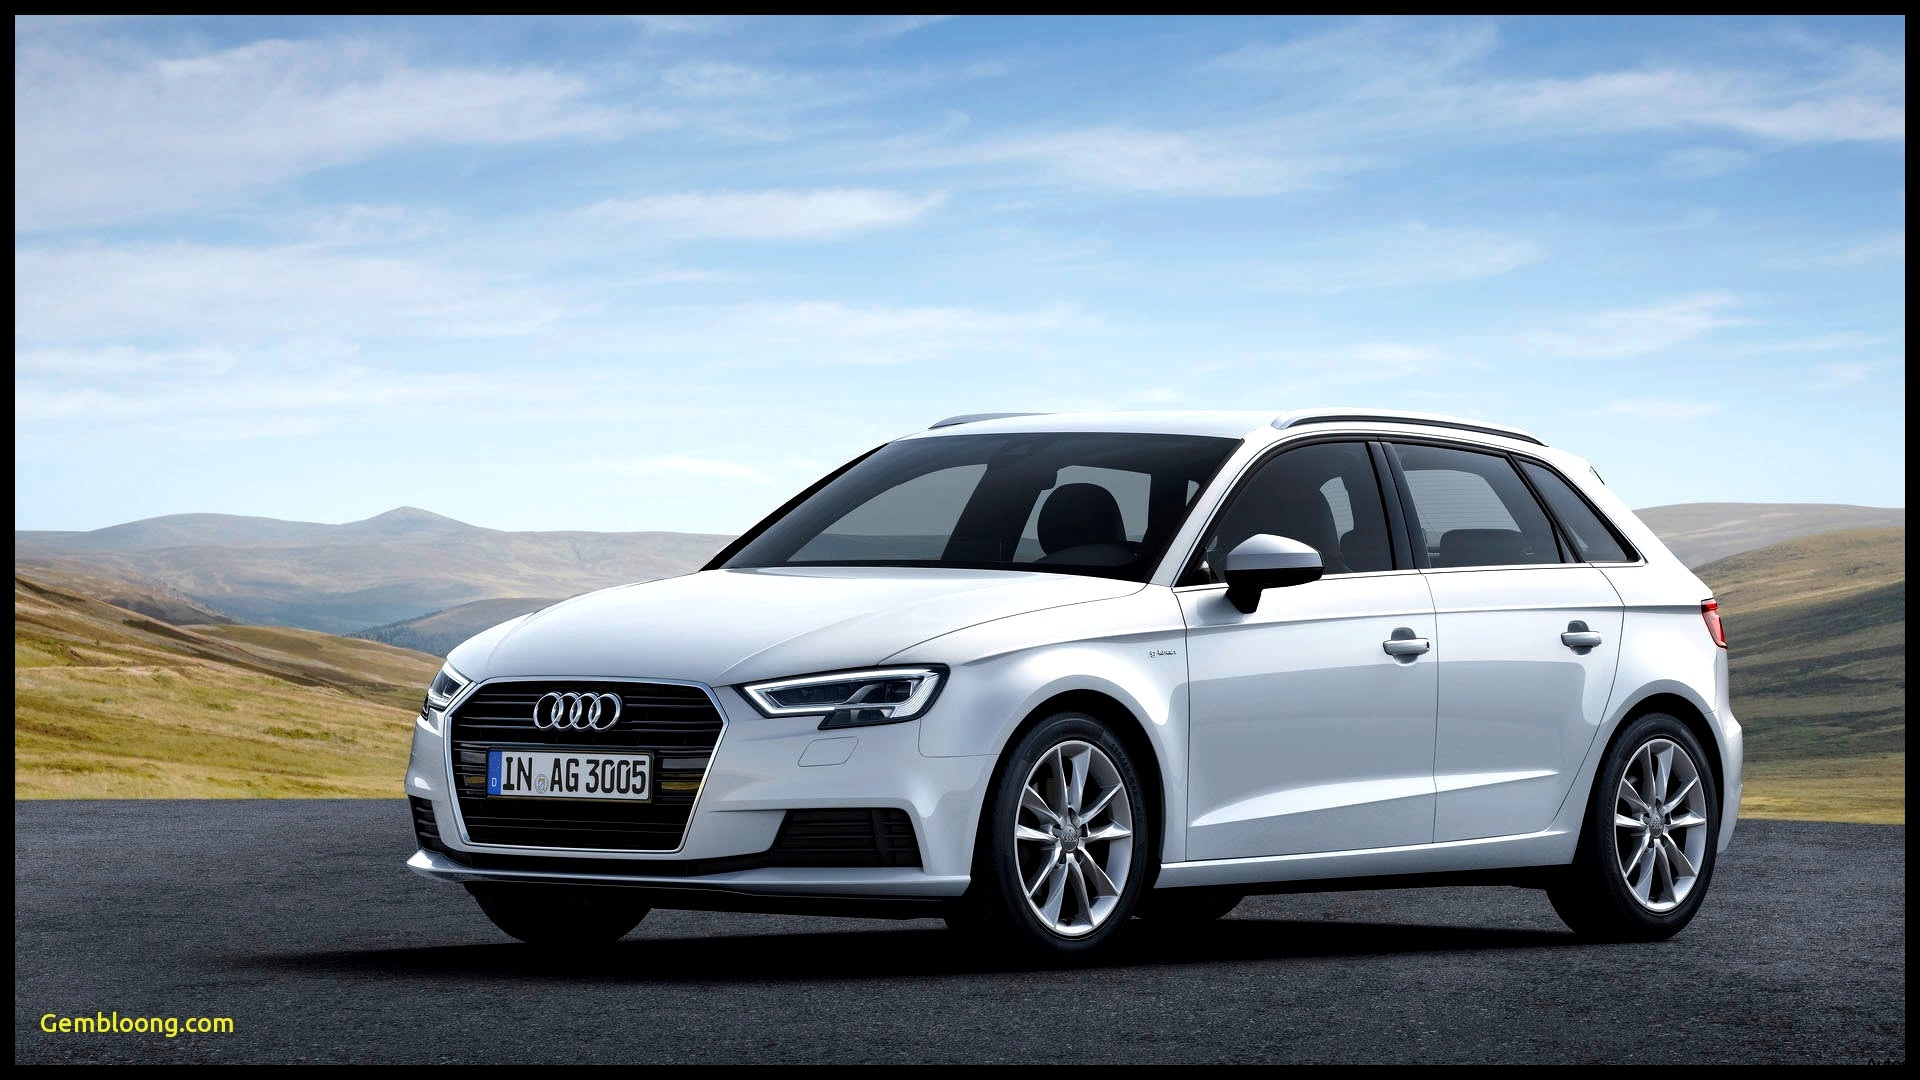 2018 Audi Q3 Release Date Prices Reviews and 2018 Audi Q3 Release Date and